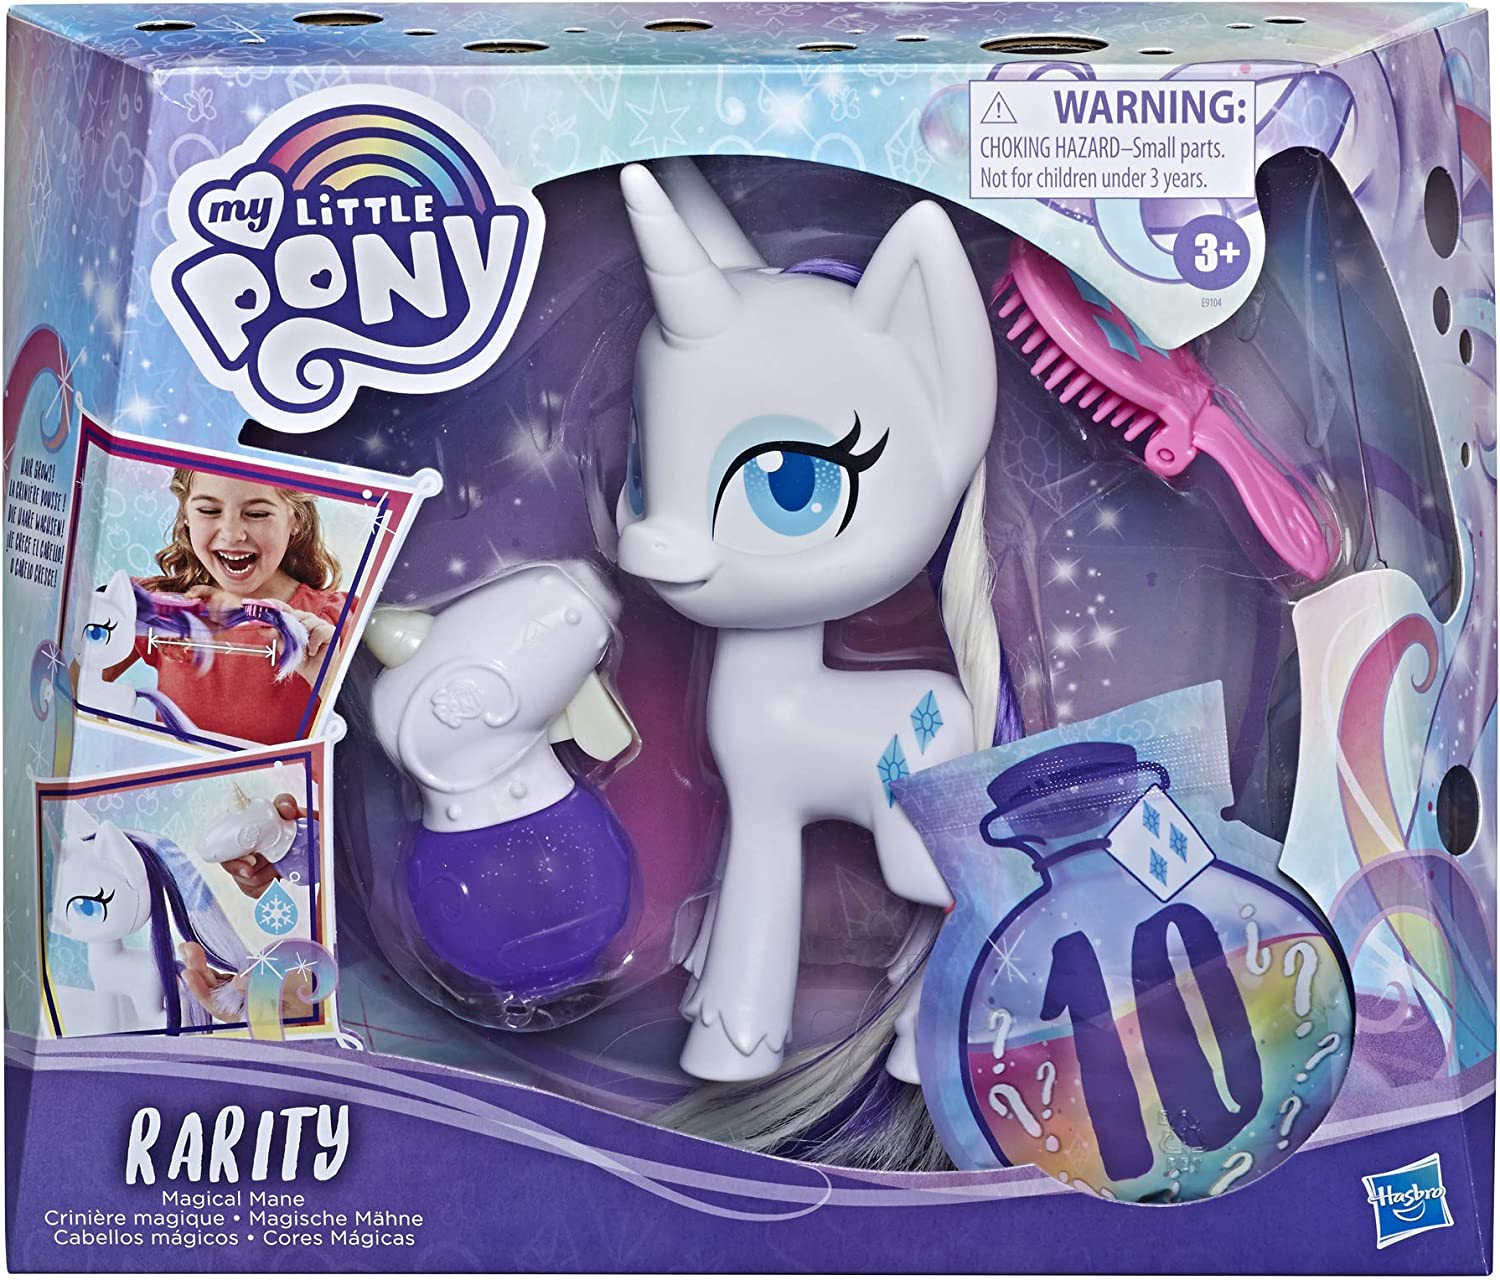 Amazon Com My Little Pony Magical Mane Rarity Toy 6 5 Hair Styling Pony Figure With Hair That Grows Changes Color 10 Surprise Accessories Toys Games